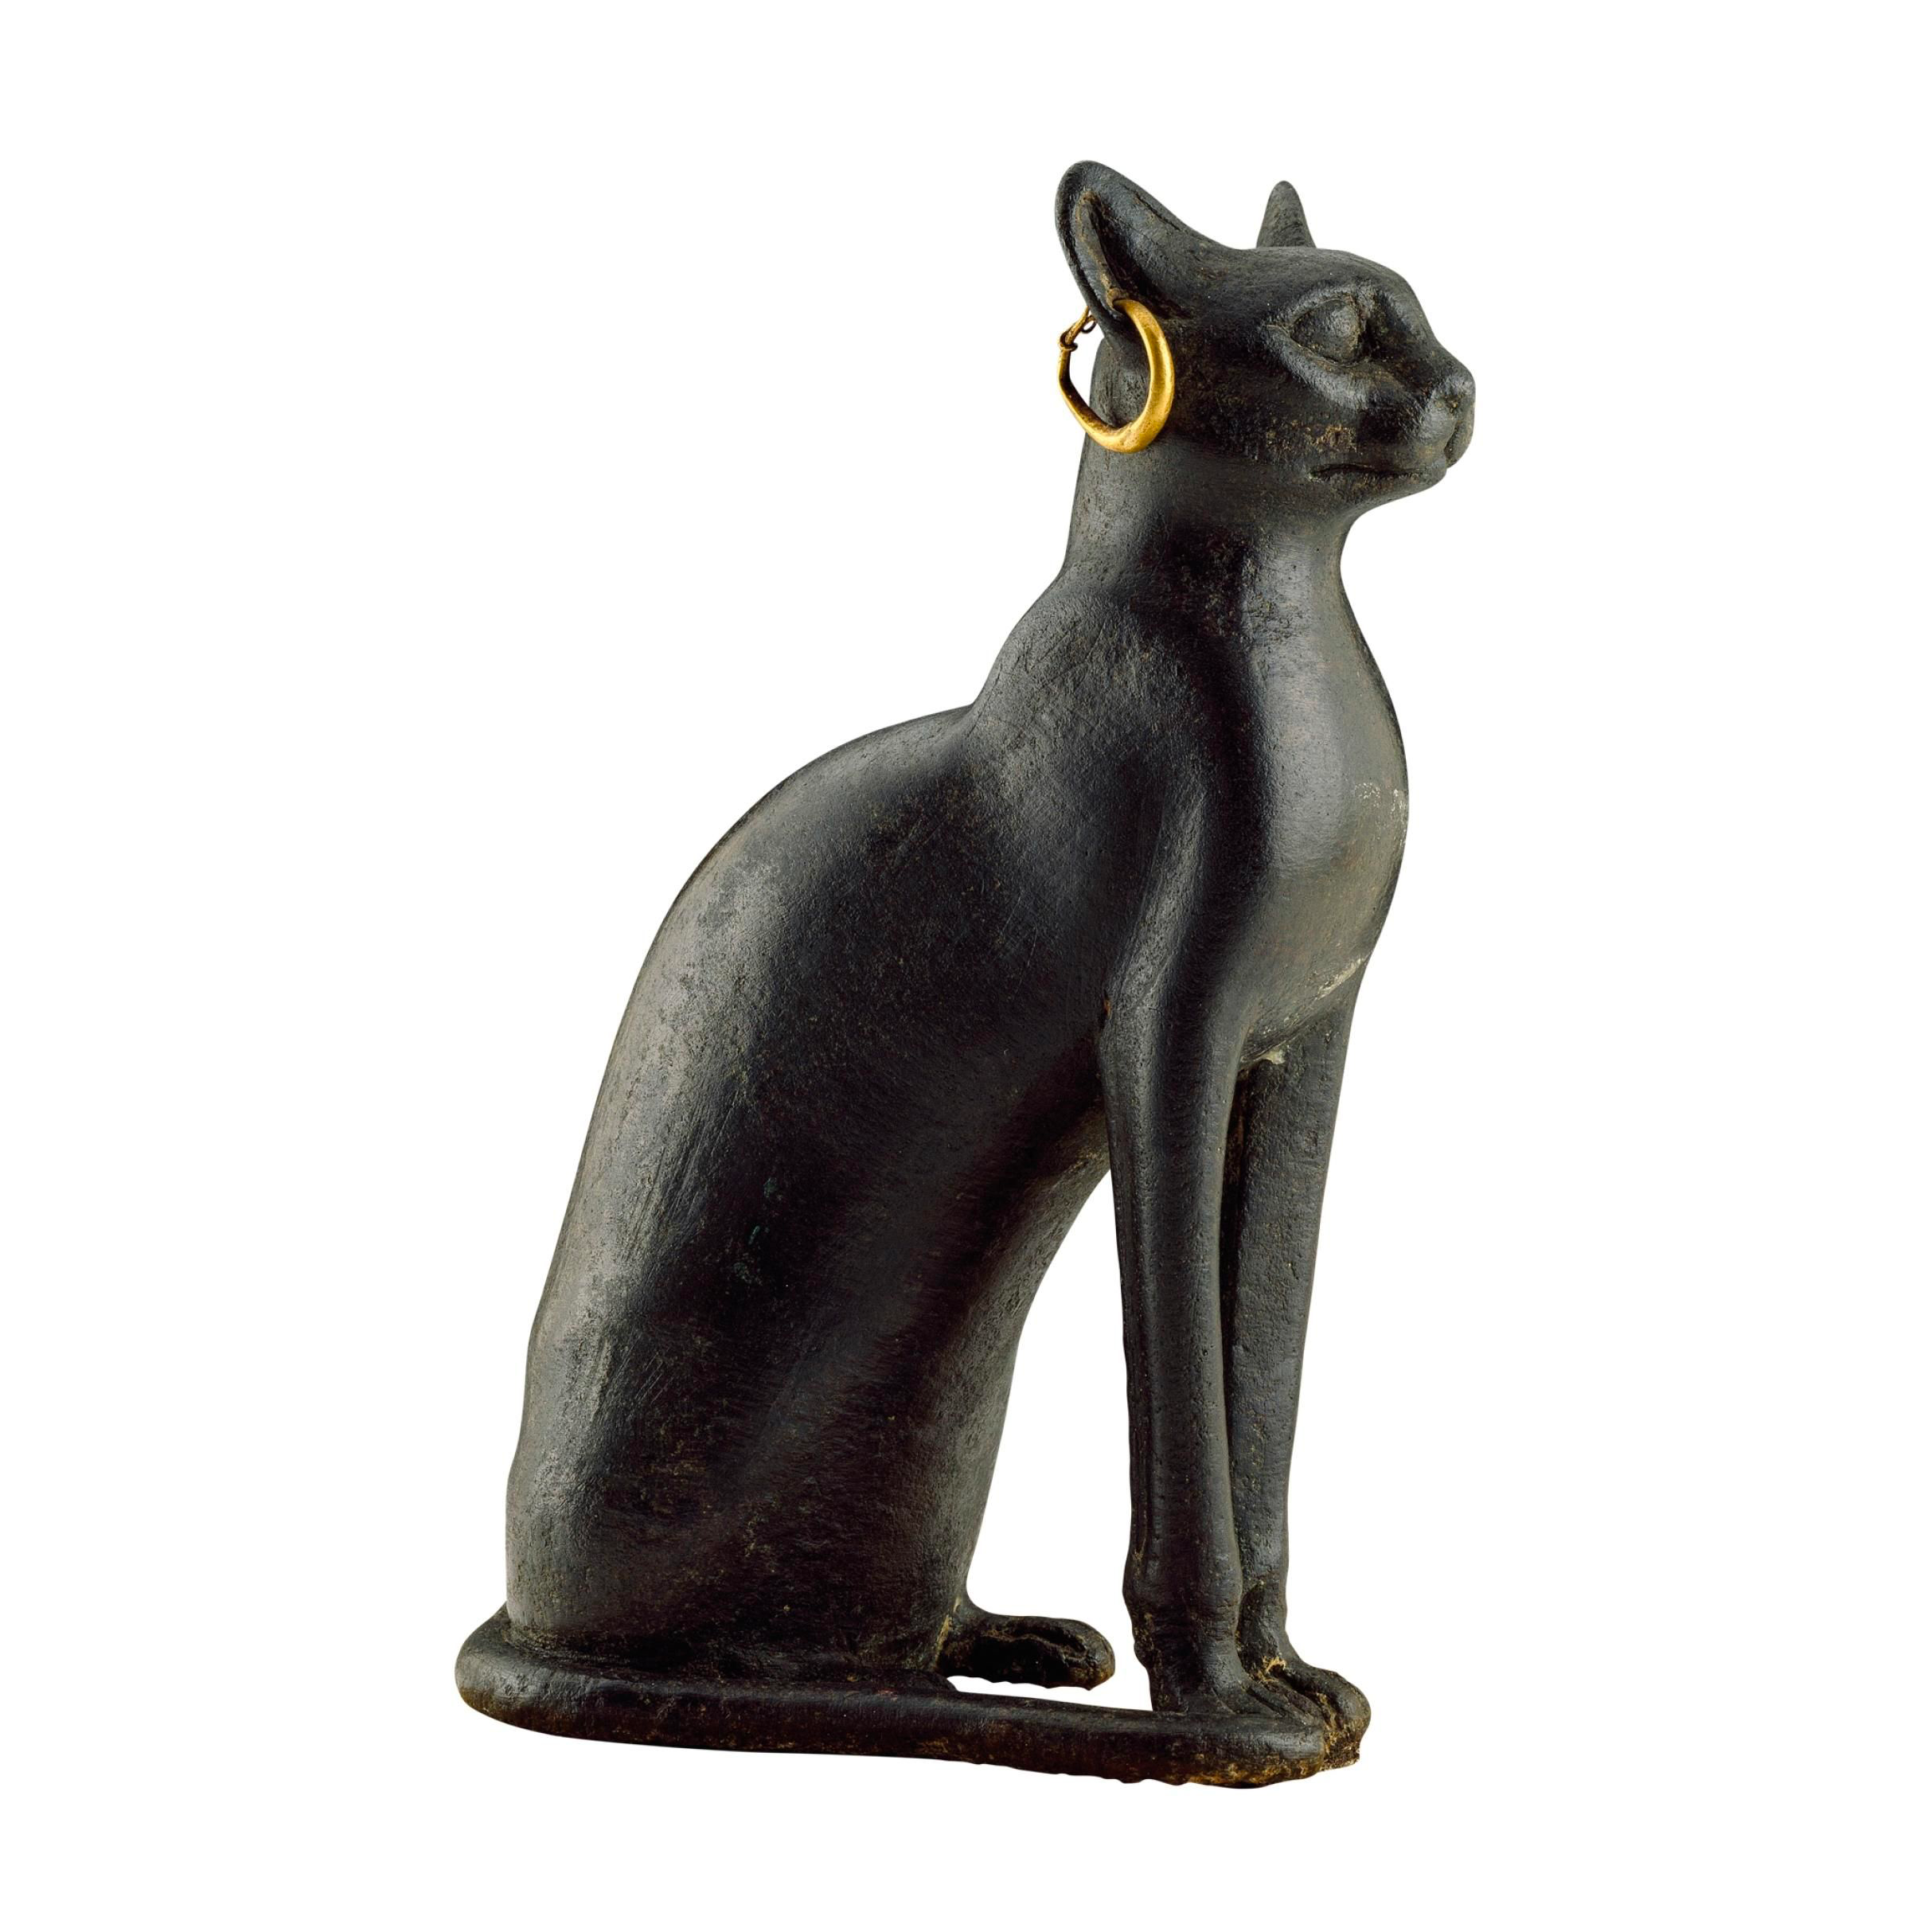 Copper statue of the cat goddess Bastet. Eighth to fourth centuries B.C. PHOTOGRAPH BY MARY EVANS/SCALA, FLORENCE